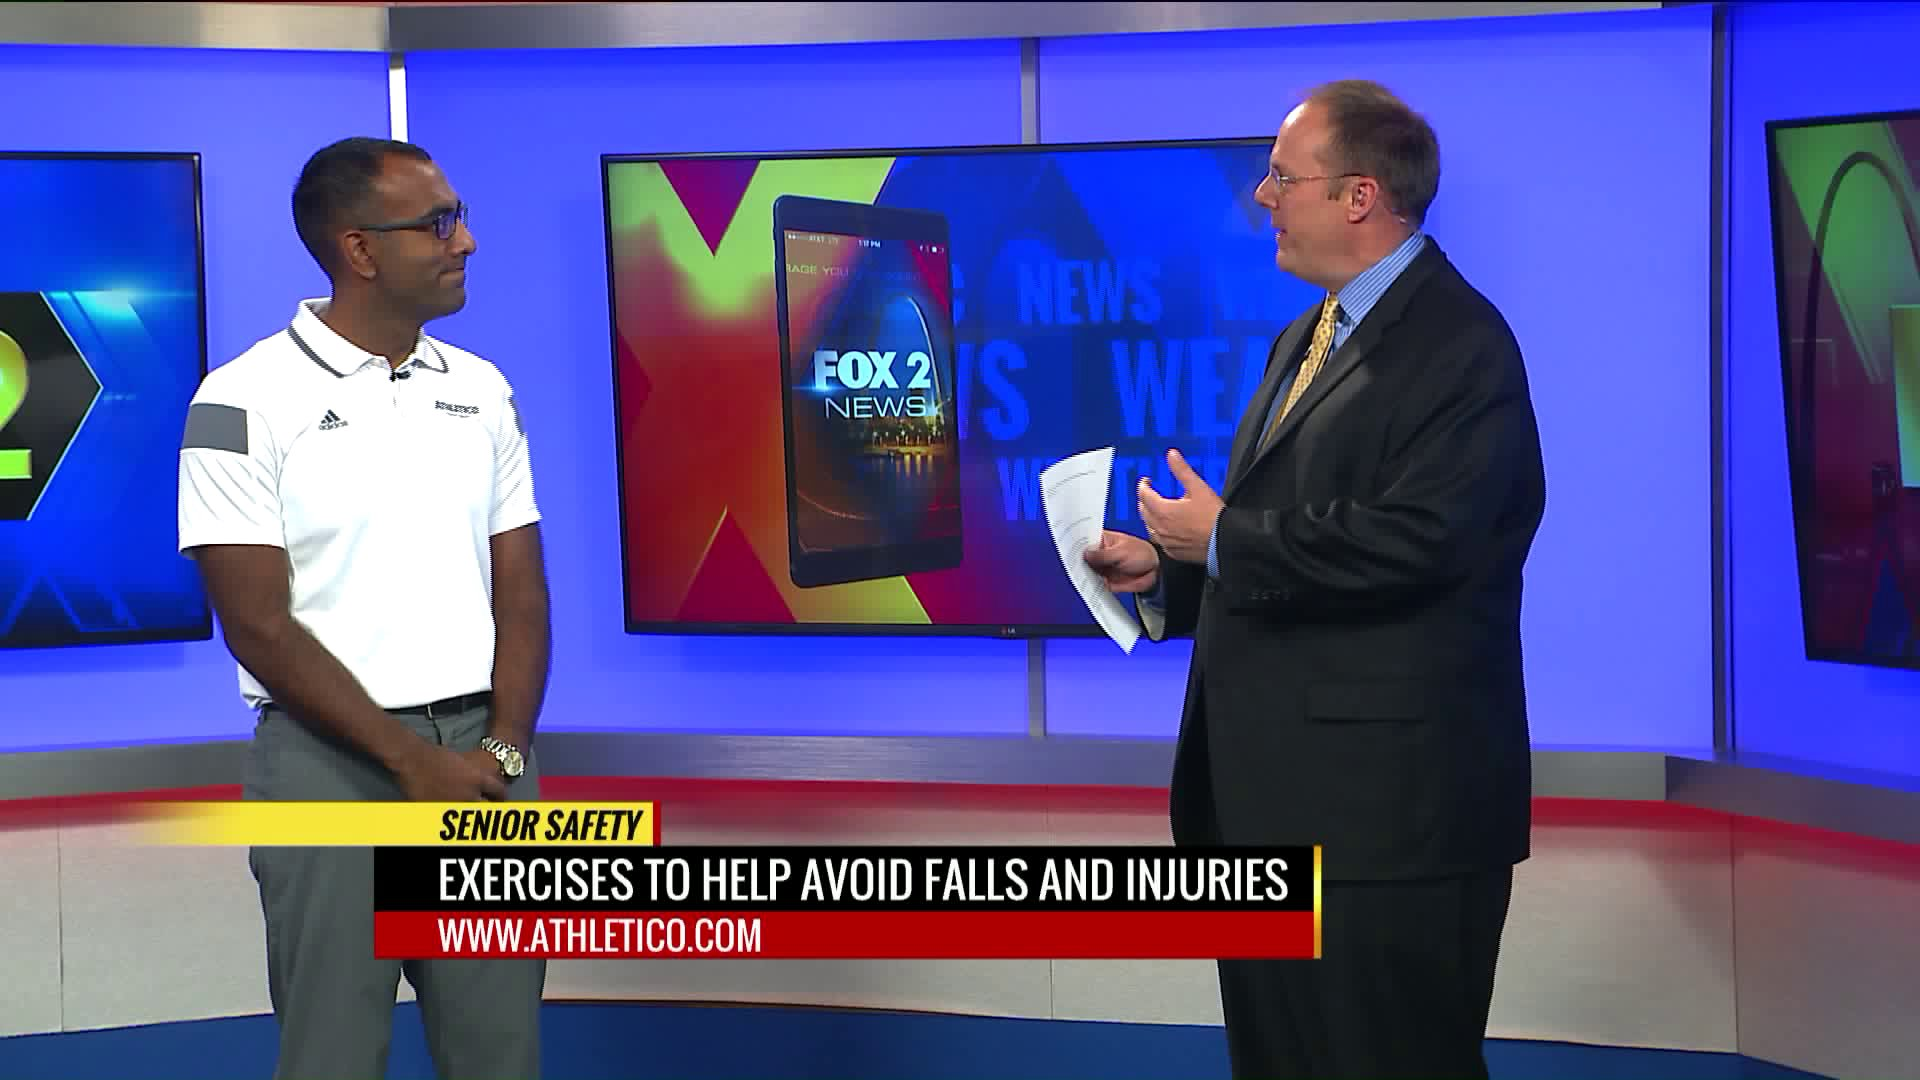 Athletico Physical Therapy Fox2now